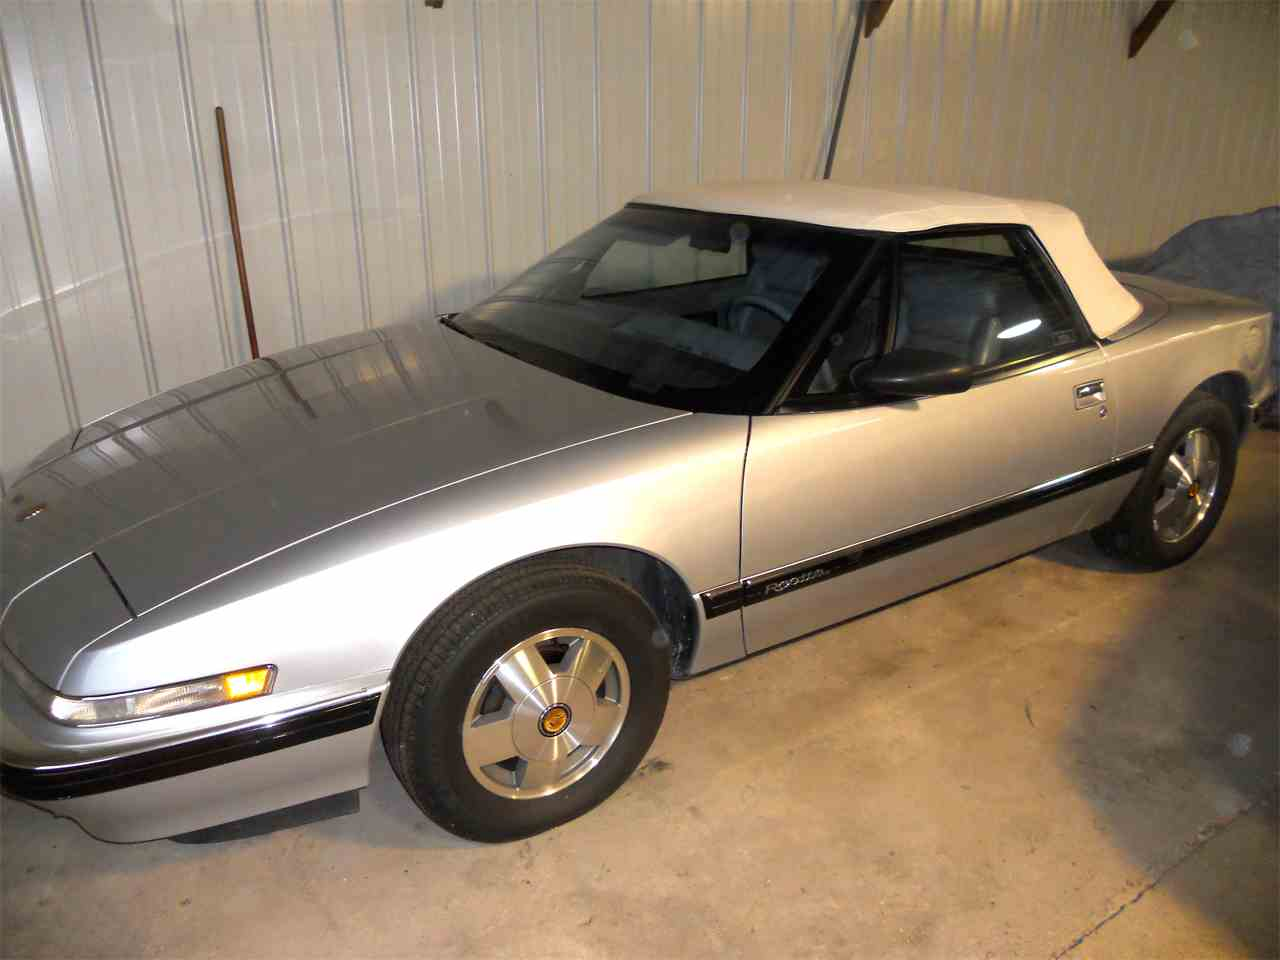 Large Picture of 1990 Buick Reatta located in Osceola Iowa Offered by a Private Seller - F2OB